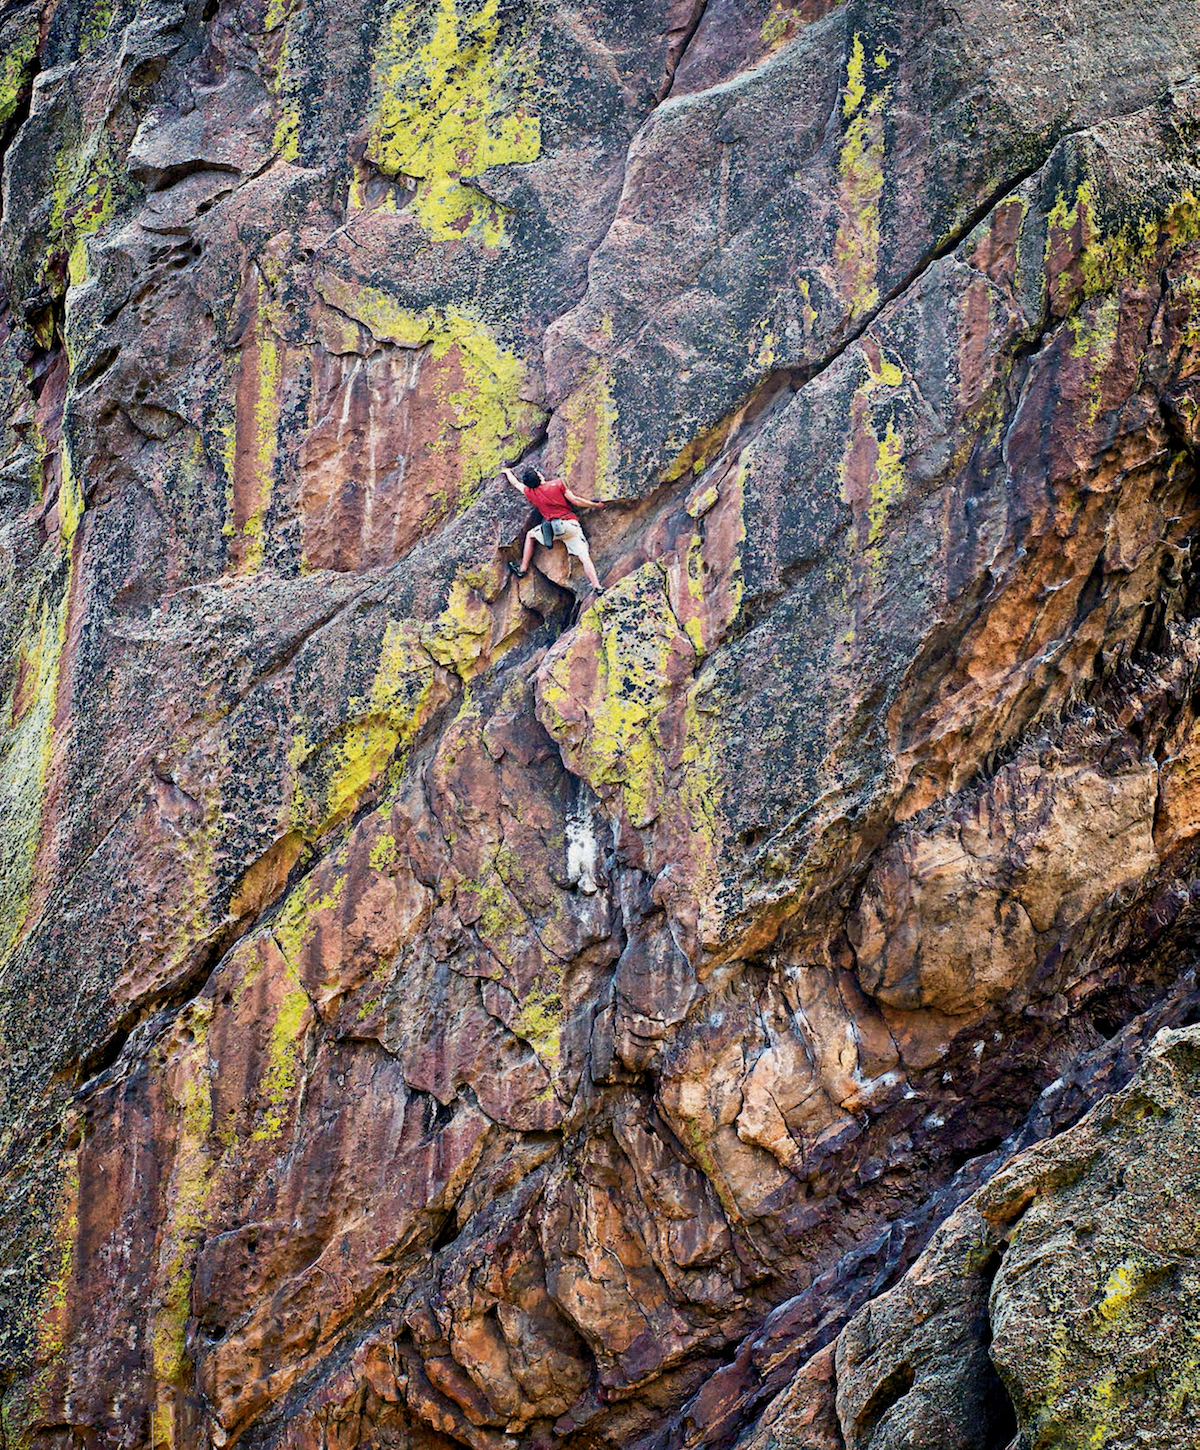 Honnold on Outer Space (5.10c), Eldorado Canyon, Colorado. Philosopher Jack Turner argues, Solo climbing is unique, a direct confrontation with the self. That purity of attention begins to be diluted as soon as you start worrying about other things. By the time you're worrying about whether your logo is being seen, it's a totally different experience.... The spirit of climbing is untranslatable into mass media. [Photo] Celin Serbo